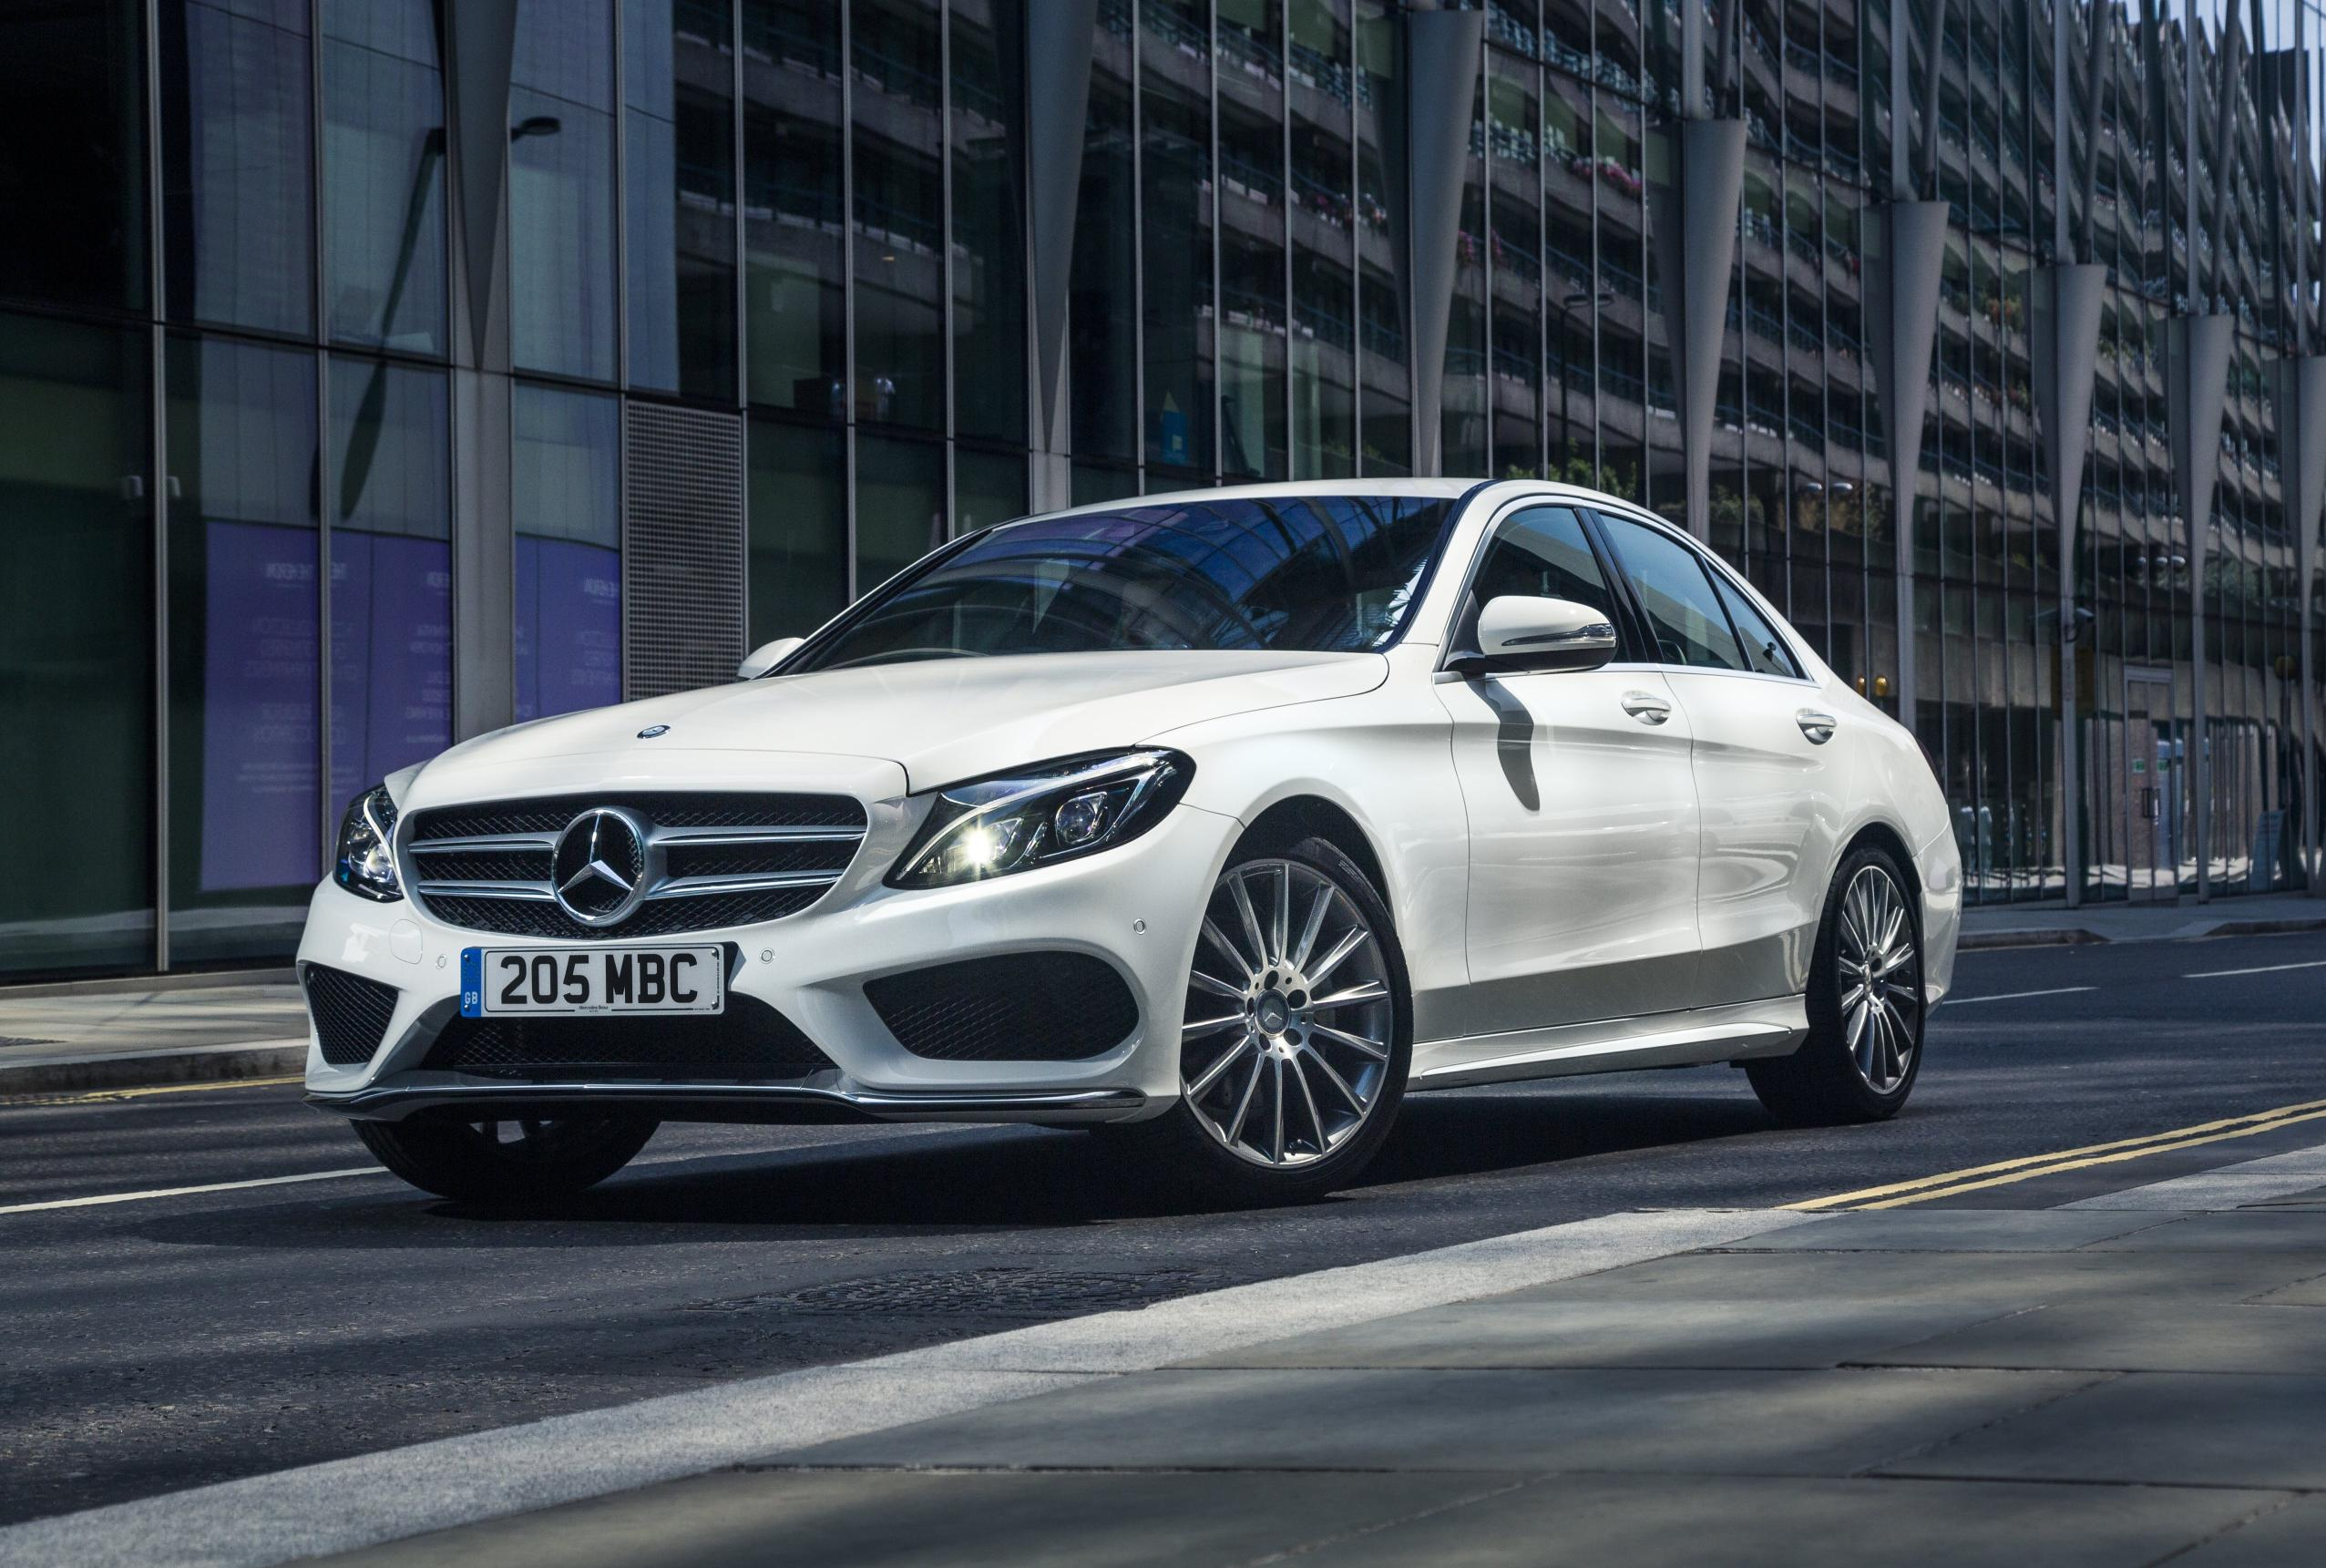 2015 mercedes benz c class launch date revealed for Mercedes benz class 2015